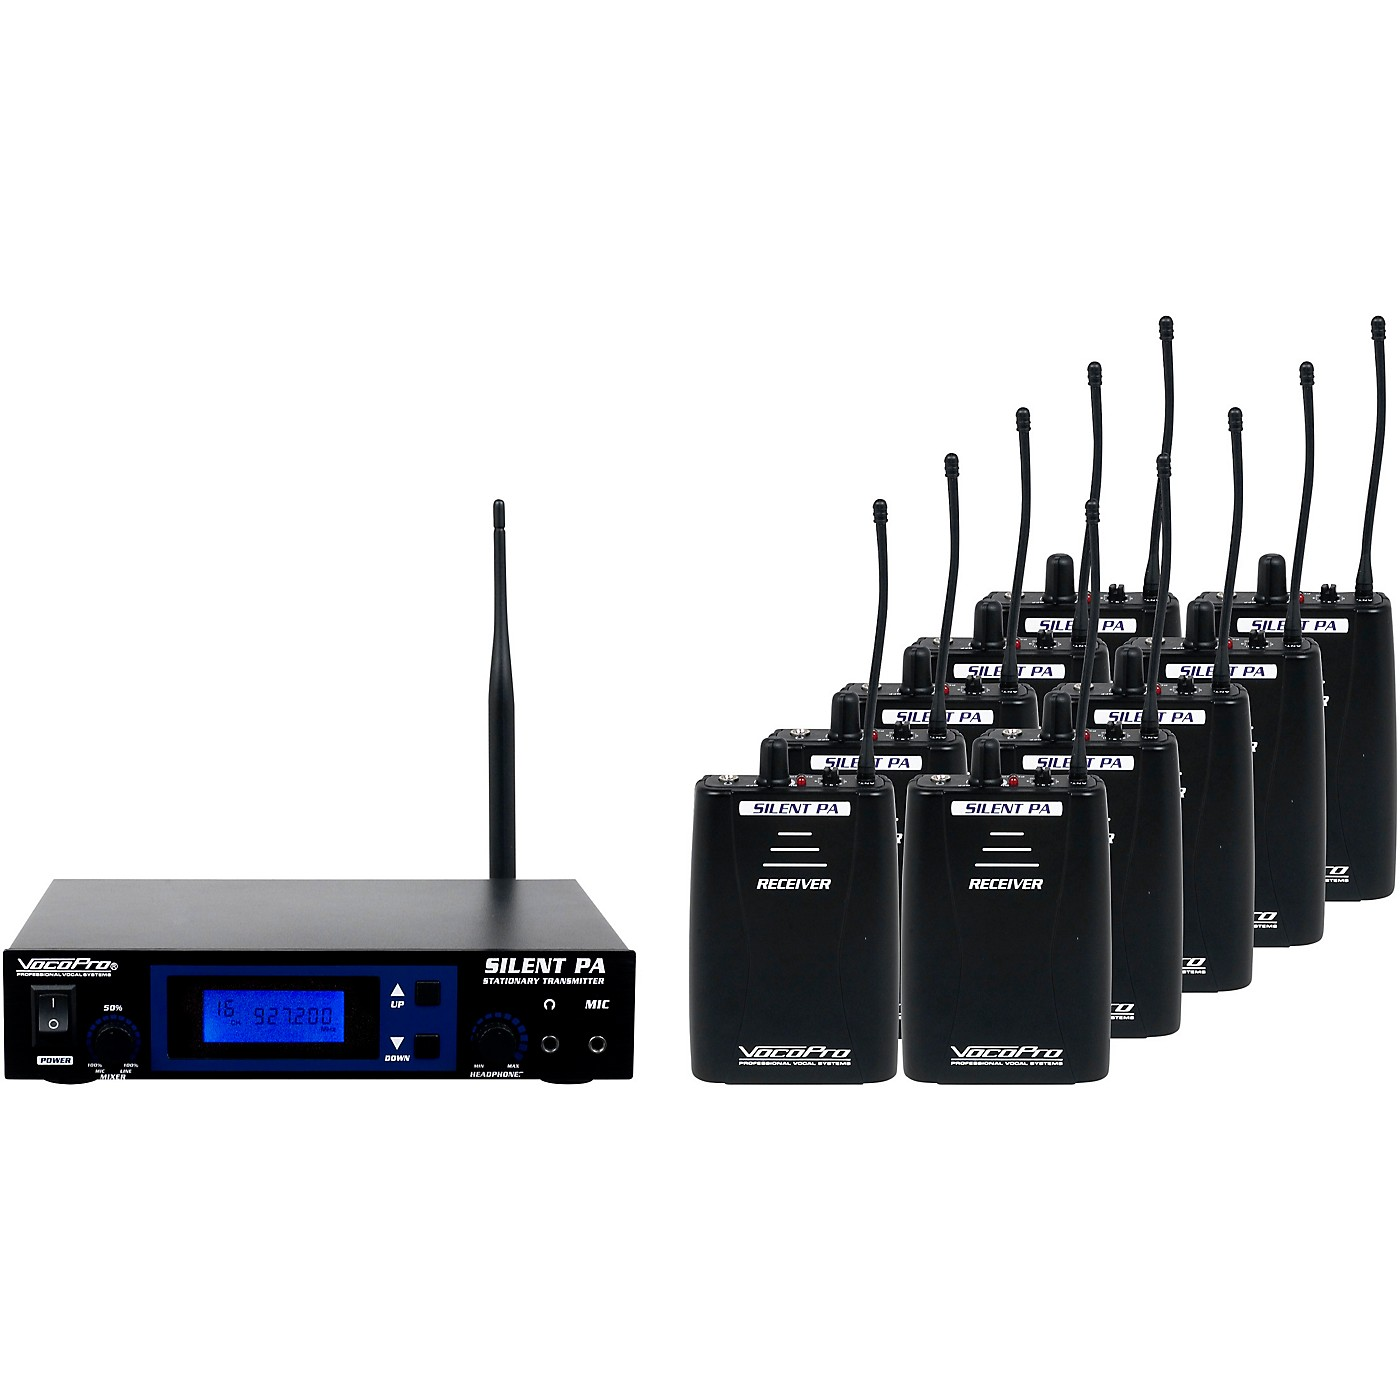 VocoPro SilentPA-SEMINAR10 16CH UHF Wireless Audio Broadcast System (Stationary Transmitter with ten bodypack receivers) thumbnail